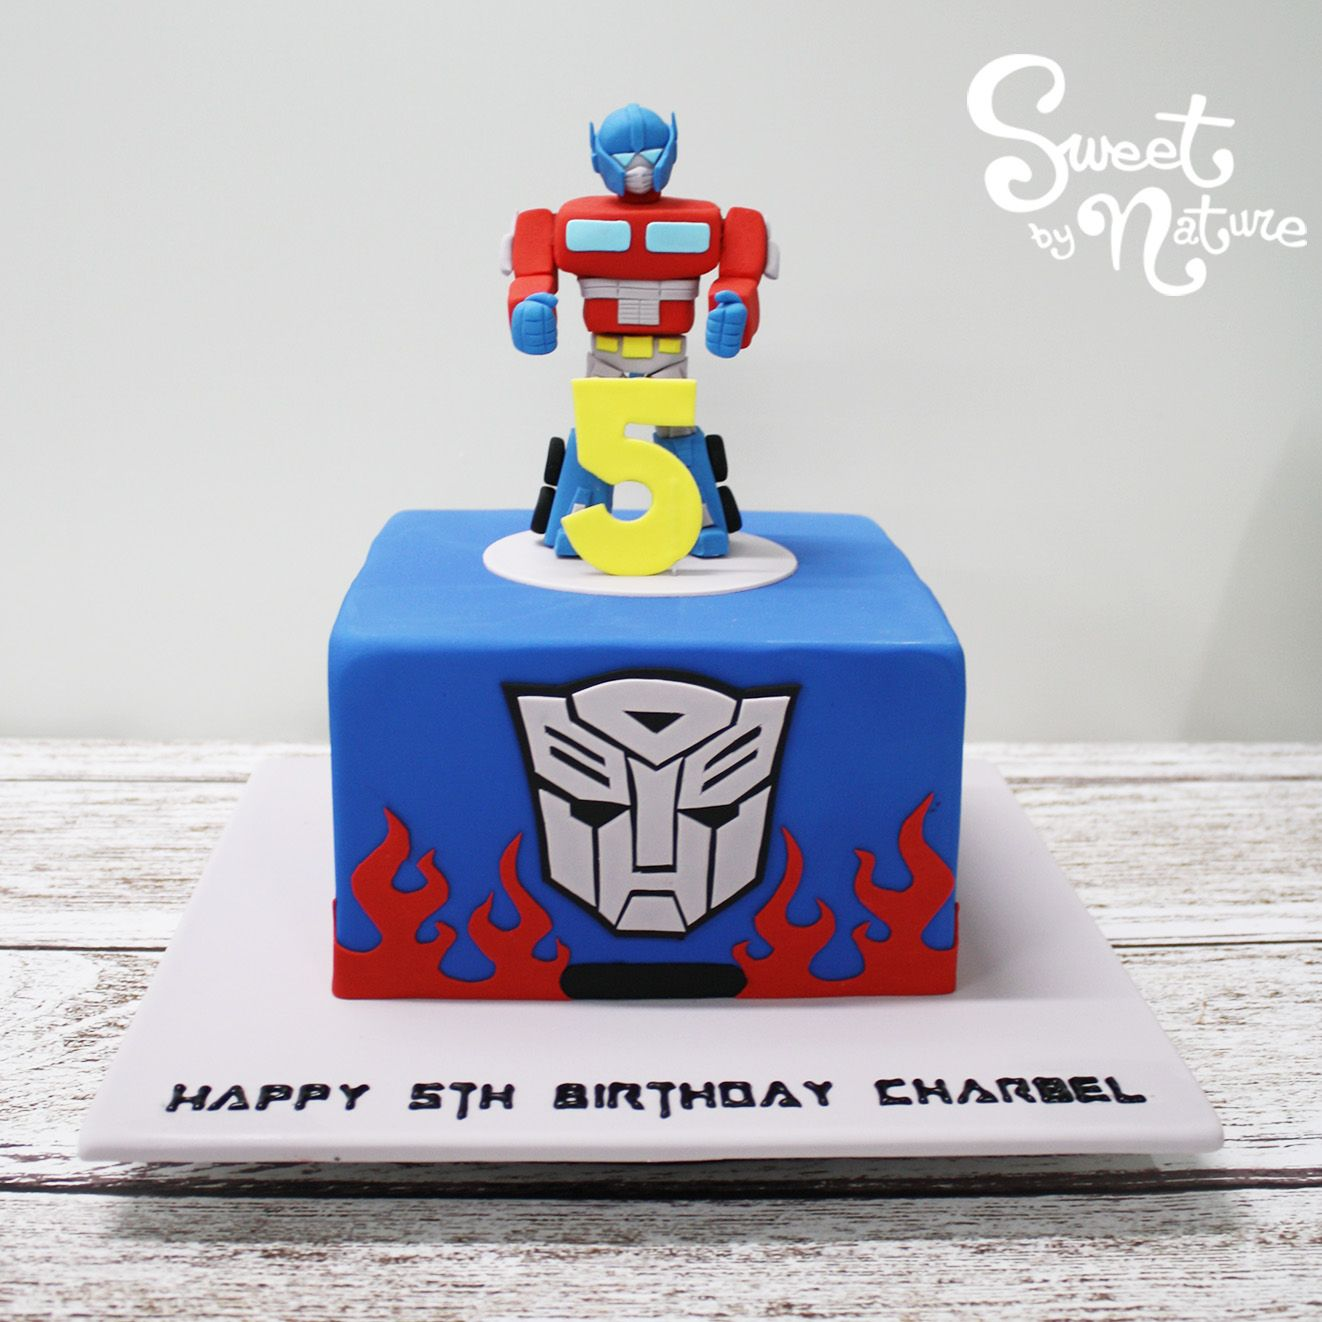 Charbels 5th Birthday Cake Was Transformers Themed Complete With An Optimus Prime Topper